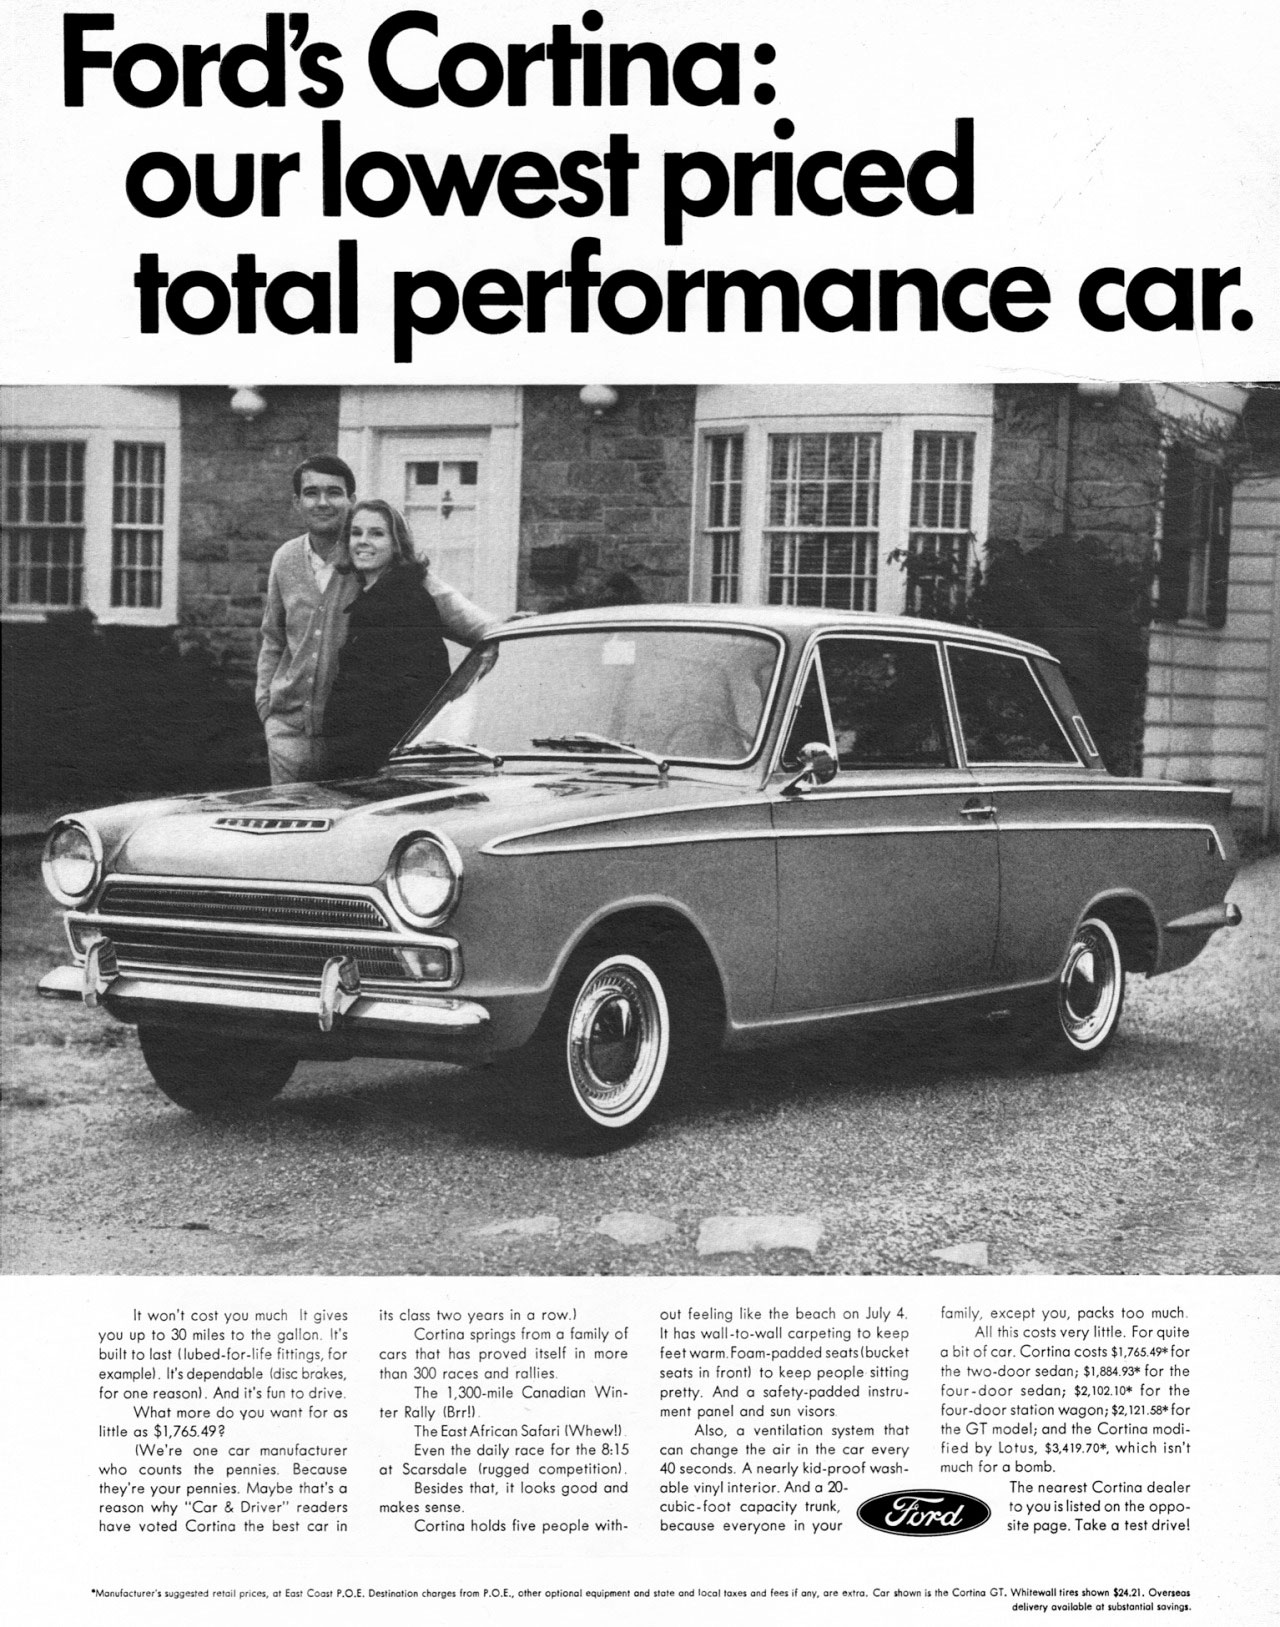 Ford's Cortina: our lowest priced total performance car.   It won't cost you much It gives you up to 30 miles to the gallon. It's built t last lubed-for-life fittings, for example). It's dependable Idisc brakes, for one reason). And it's fun to drive. What more do you wont for as little os $1,765,9? We're one .r manufacturer who counts the pennies. Be.use they're your pennies. Maybe that's a reason why ''Car & Driver'' readers hove voted Cortina the best car in  its class two years in a row.) Cortina springs from a family of .rs that has proved itself in more than 300 races and rallies The 1,300-mile Canadian Wit. AtRally (3651 The East African Safari 1Whew!) Even the doily race for 65 8,15 ot Scarsdale (rugged competition). Besides that, it looks good and makes sense. Cortina holds five people with- out feeling like the beoch on July 4. It hos woll-to-wall corpeting to keep feet warm. Foam-padded seats (bucket seats in front) to keep people sitting pretty. And a safety-padded instru-ment panel and sun visors Also, a ventilation system that con chonge the air in the car every 40 seconds. A nearly kid-proof wash-able vinyl interior. And a 20- cubic-foot capacity trunk, be.use everyone in your  farnily, except you, pocks too much AU this costs very little. For quite a bit of cor. Cortina costs $1,765.49. for the two-door sedan; S1,88413* for the four -door sedan; $2,102.135 for the four-door station wagon; $2,121.58*for the GT model; and the Cortina modi-fied by Lotus, 33,419.70*, which isn't much for o bomb. The nearest Cortito deoler to you is listed on the oppo-site page. Take a test drive!  •Motedaturer's sedgested ...fed once,. at Post Coost P.O.E. Destination kir, how P.O.E., other optional eenepweet and stet. and locel wee, eed fees if any, are eerie. Car Acme is the C.. GT. Whitewall tiros shave .24.21. Overseas awsibble at sebstantiol